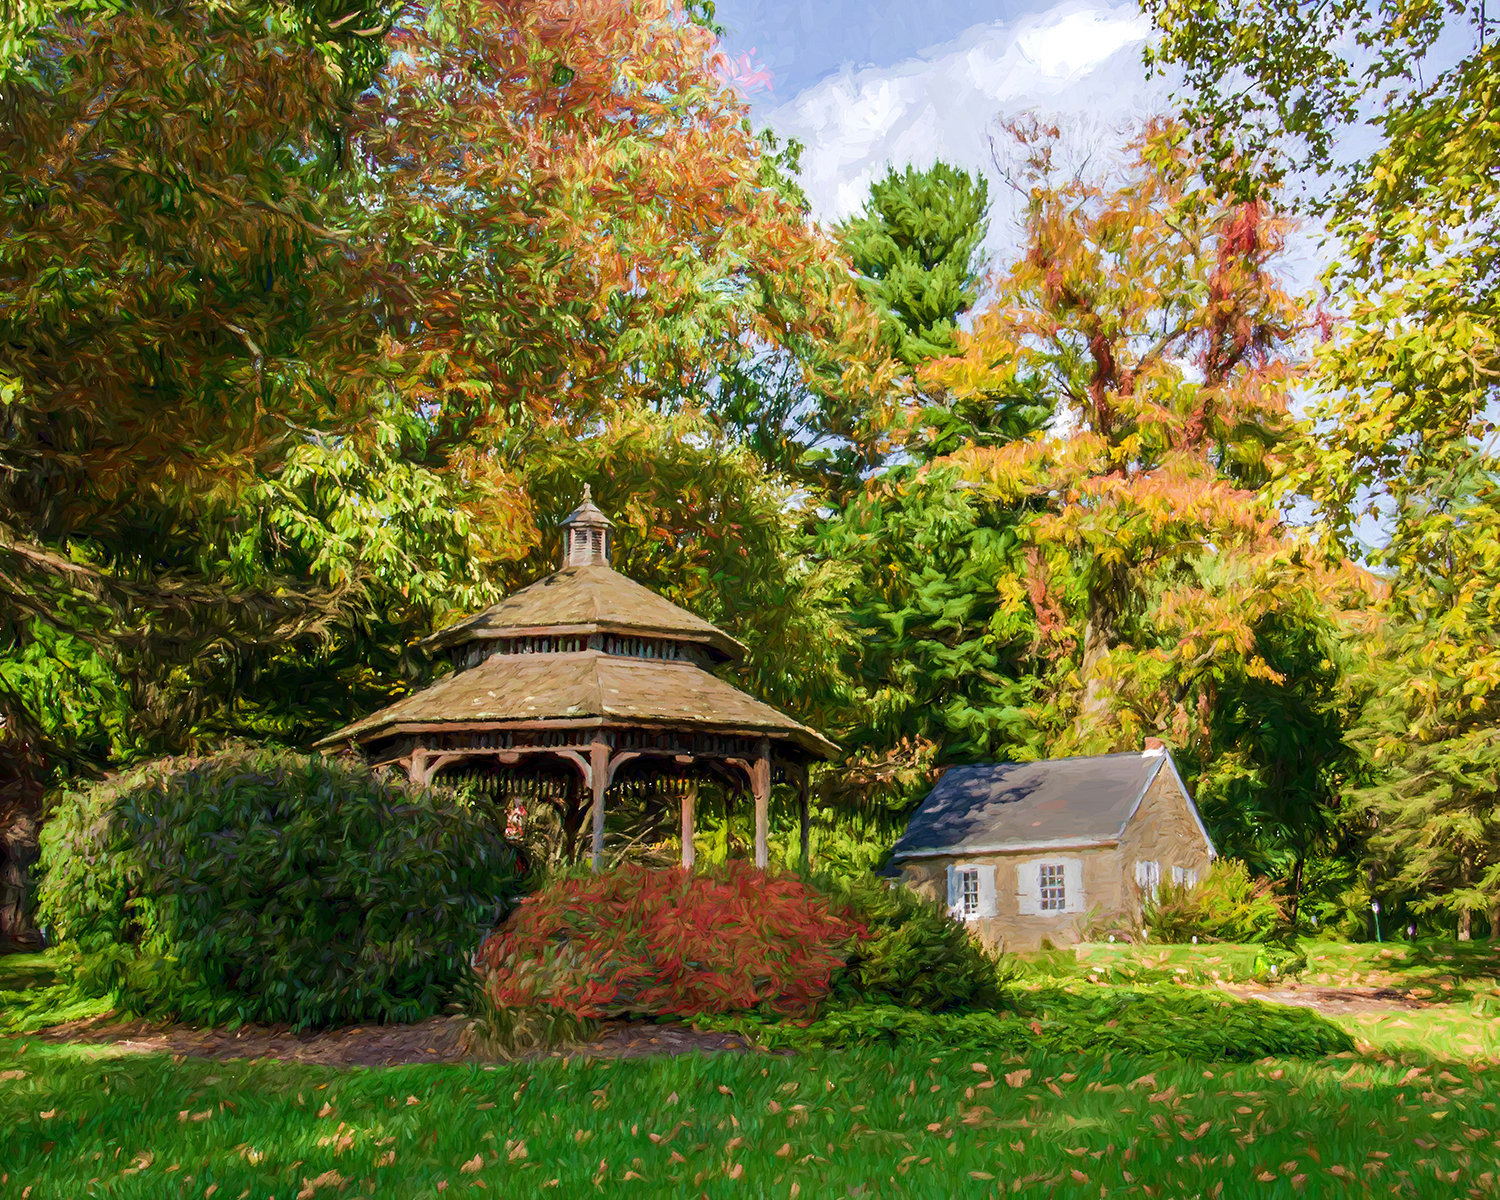 OlgaThornton - Gazebo in Fall